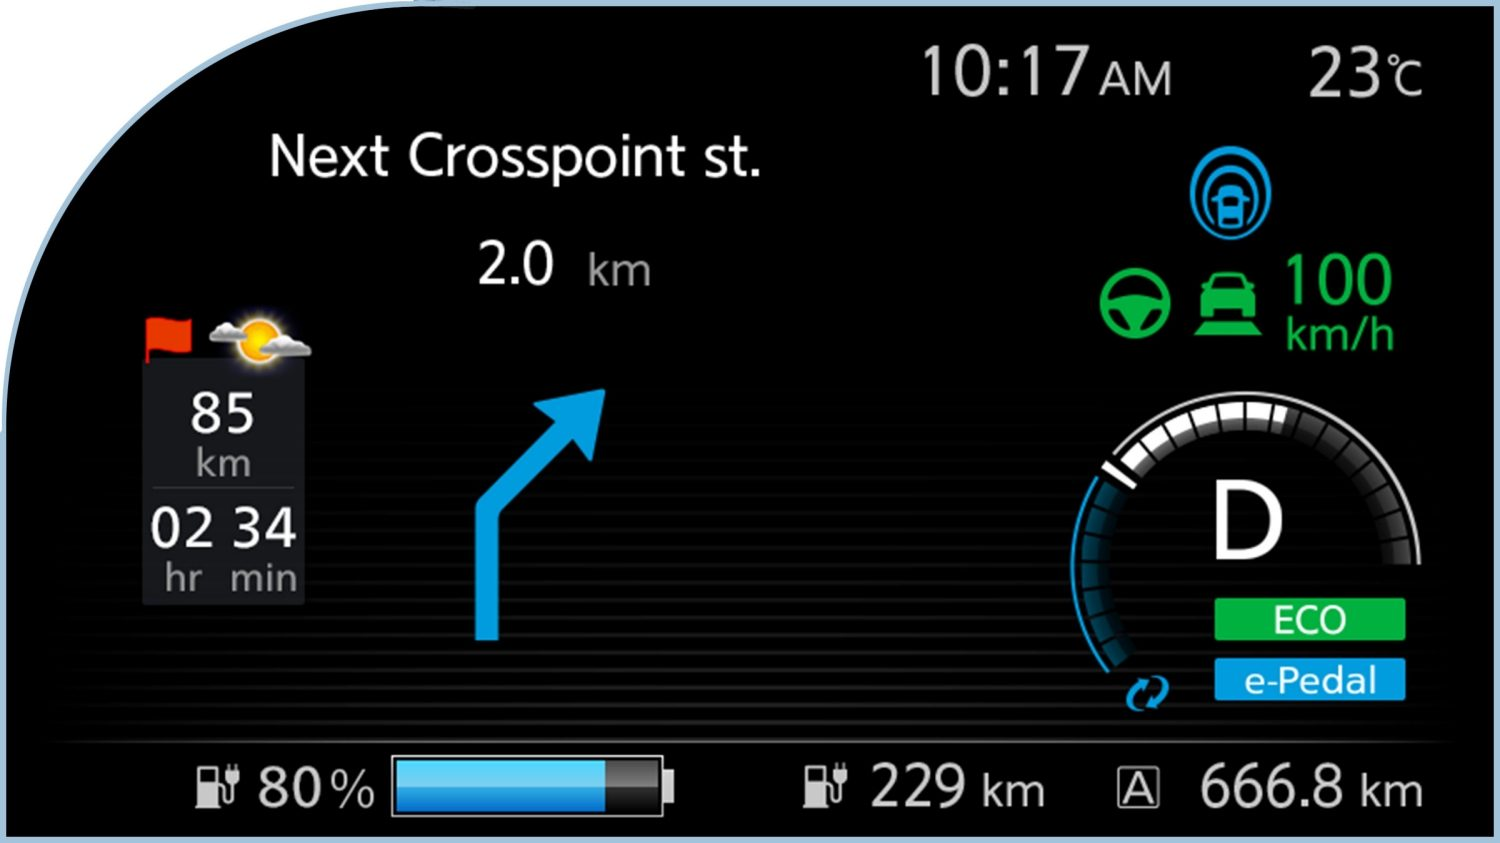 Nissan LEAF digital information display showing navigation